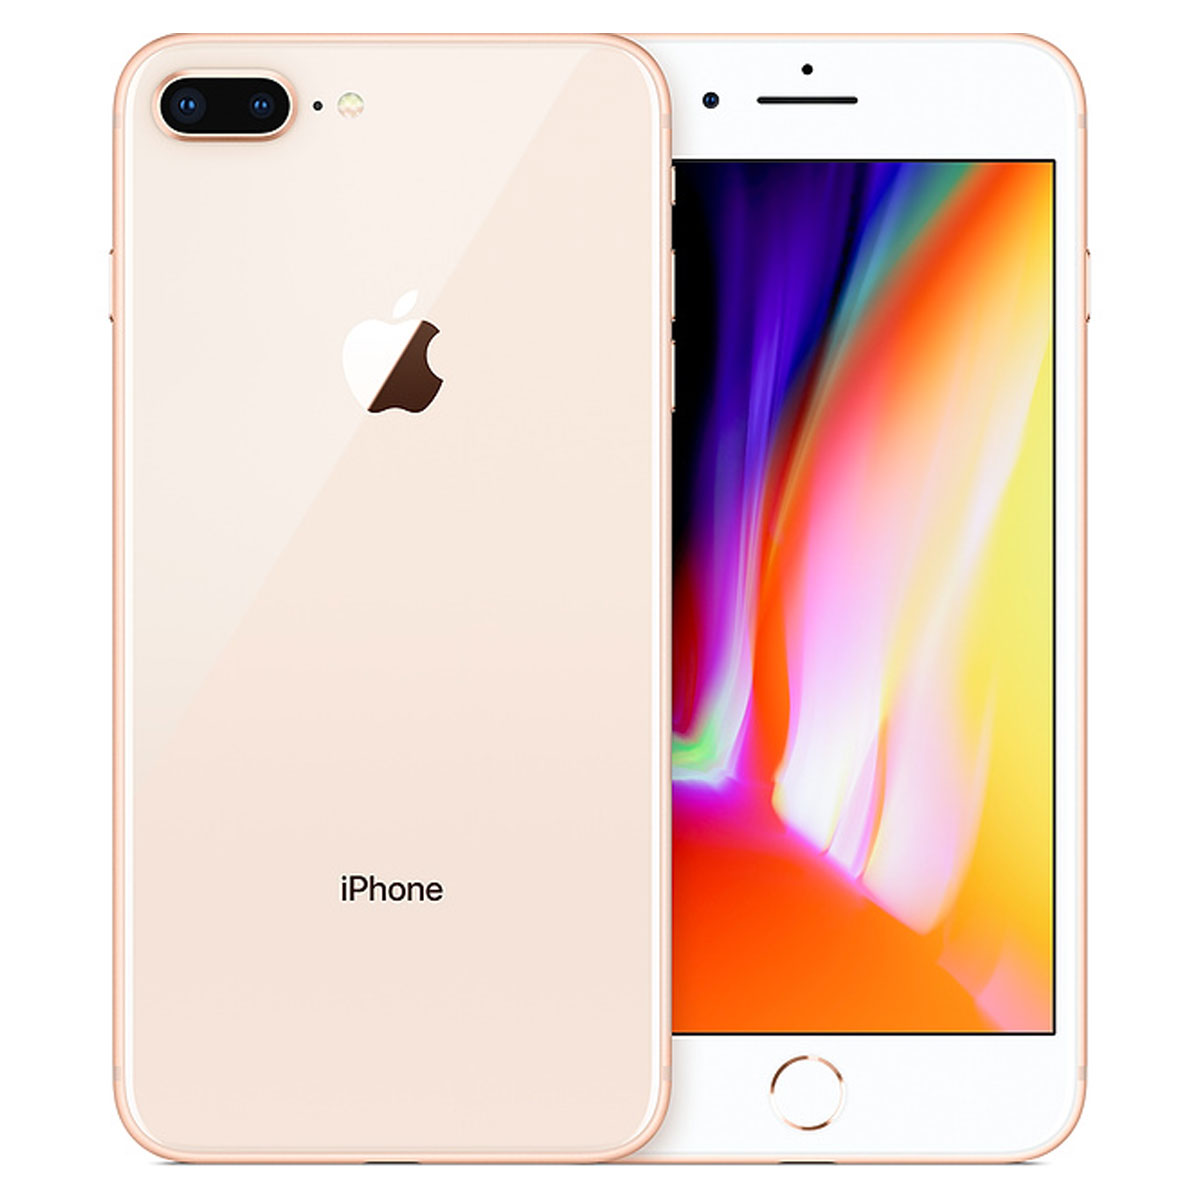 Apple iPhone 8 64 GB Unlocked - Gold. More colours also available in Iphone 8 are Red, White, & Black. Specifications of Apple iPhone 8 Gold